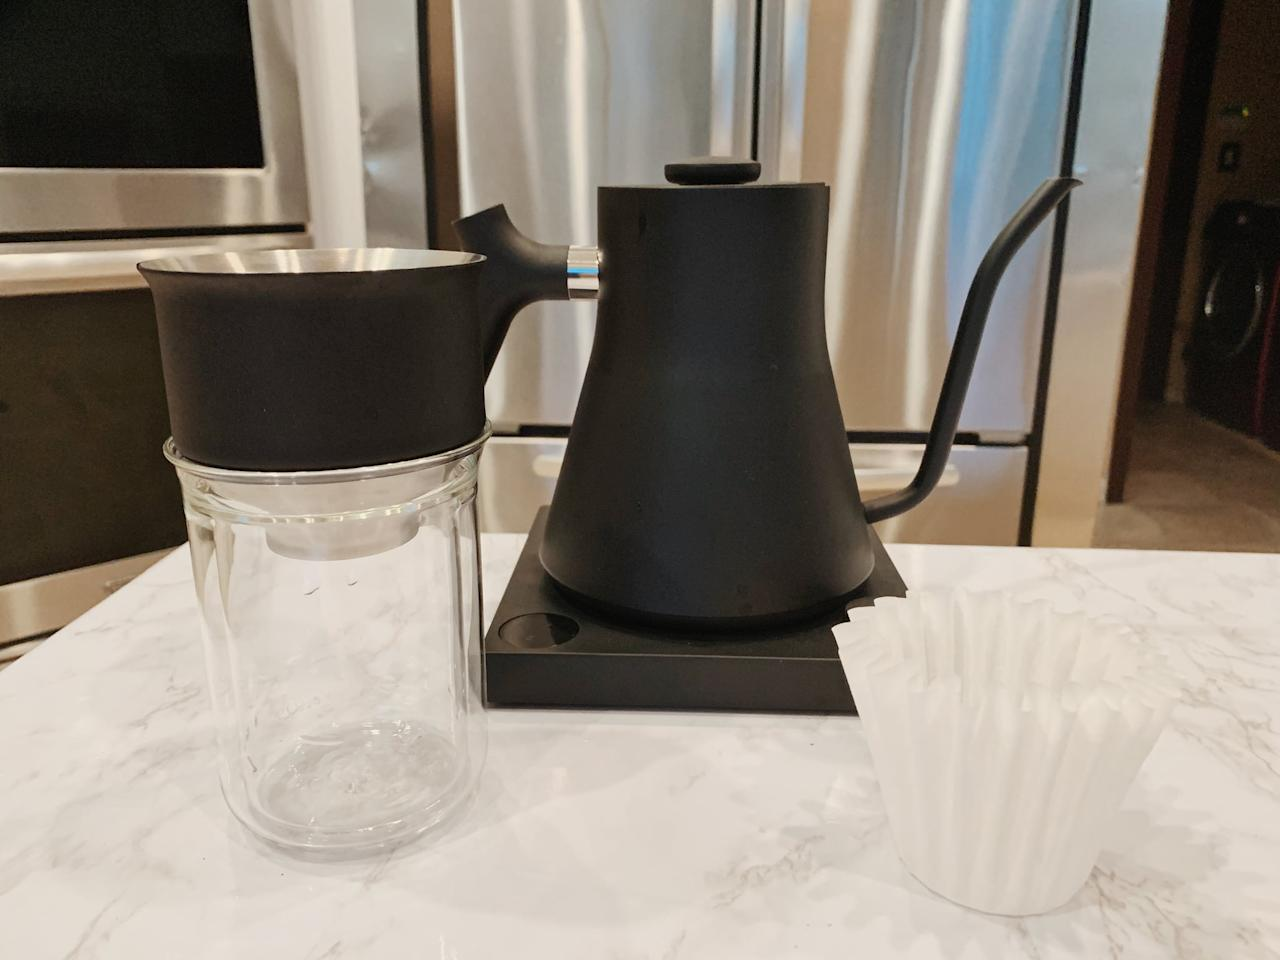 """<p>Lay out all the materials you need to make your pour-over coffee. Apart from ground coffee beans, you'll need a pour-over kettle like this <product href=""""https://fellowproducts.com/products/staggekg?utm_source=google&amp;utm_medium=awareness&amp;utm_campaign=search_nonbrand&amp;gclid=Cj0KCQjw8fr7BRDSARIsAK0Qqr4wvKptPjlA8m-kZ7lEAfGDsNF5nU8Jy32tSY7pjEdSGjOERy6Vbf8aAiH2EALw_wcB"""" target=""""_blank"""" class=""""ga-track"""" data-ga-category=""""internal click"""" data-ga-label=""""https://fellowproducts.com/products/staggekg?utm_source=google&amp;utm_medium=awareness&amp;utm_campaign=search_nonbrand&amp;gclid=Cj0KCQjw8fr7BRDSARIsAK0Qqr4wvKptPjlA8m-kZ7lEAfGDsNF5nU8Jy32tSY7pjEdSGjOERy6Vbf8aAiH2EALw_wcB"""" data-ga-action=""""body text link"""">Fellow Stagg EKG Electric Pour-Over Kettle</product> ($149) and a pour-over set that comes with a dripper, glass, and filters like this <product href=""""https://fellowproducts.com/products/stagg-x-single-set"""" target=""""_blank"""" class=""""ga-track"""" data-ga-category=""""internal click"""" data-ga-label=""""https://fellowproducts.com/products/stagg-x-single-set"""" data-ga-action=""""body text link"""">Fellow Stagg [X] Pour-Over Set</product> ($69). You could also buy the dripper, glass, and filters separately. Now you're ready to get pouring!</p>"""